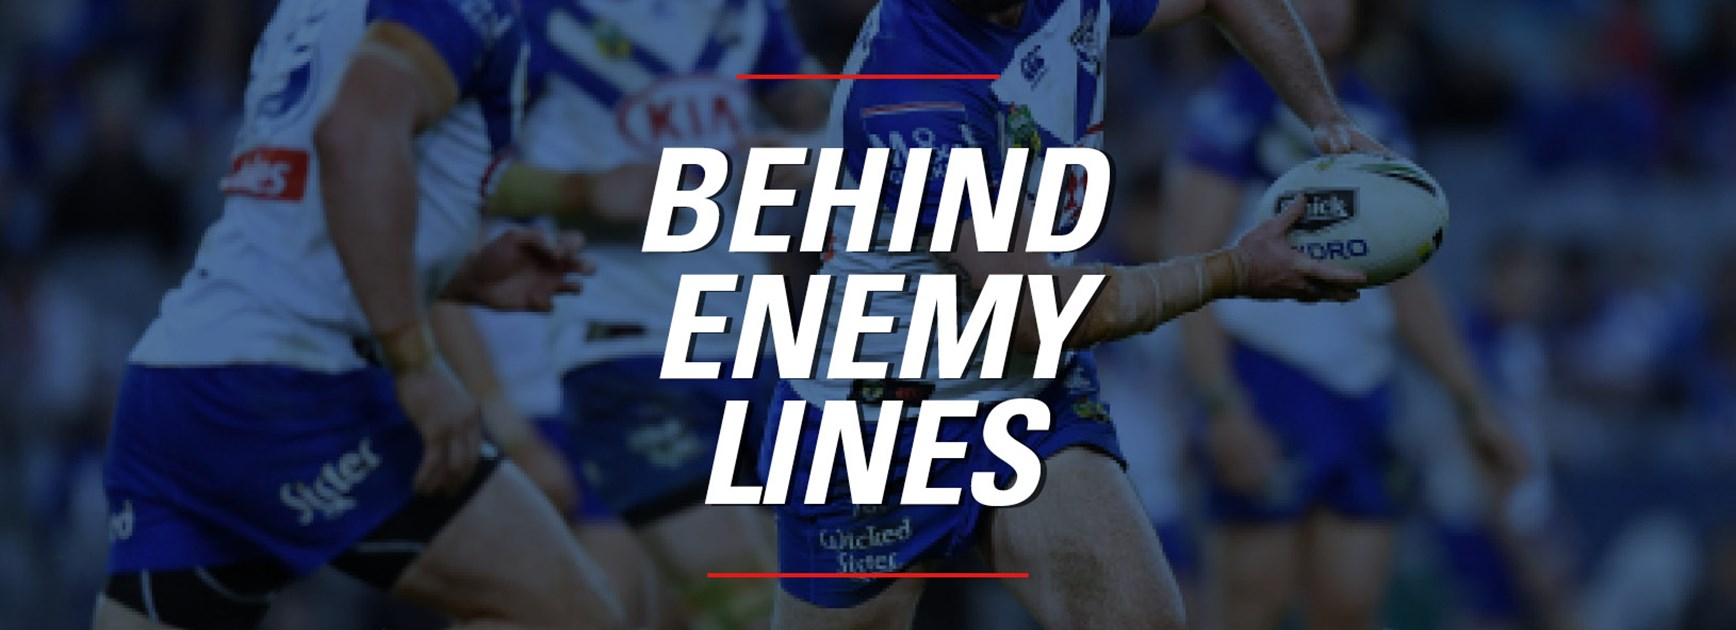 Behind Enemy Lines Round 16: Salary cap and injury woes at Bulldogs